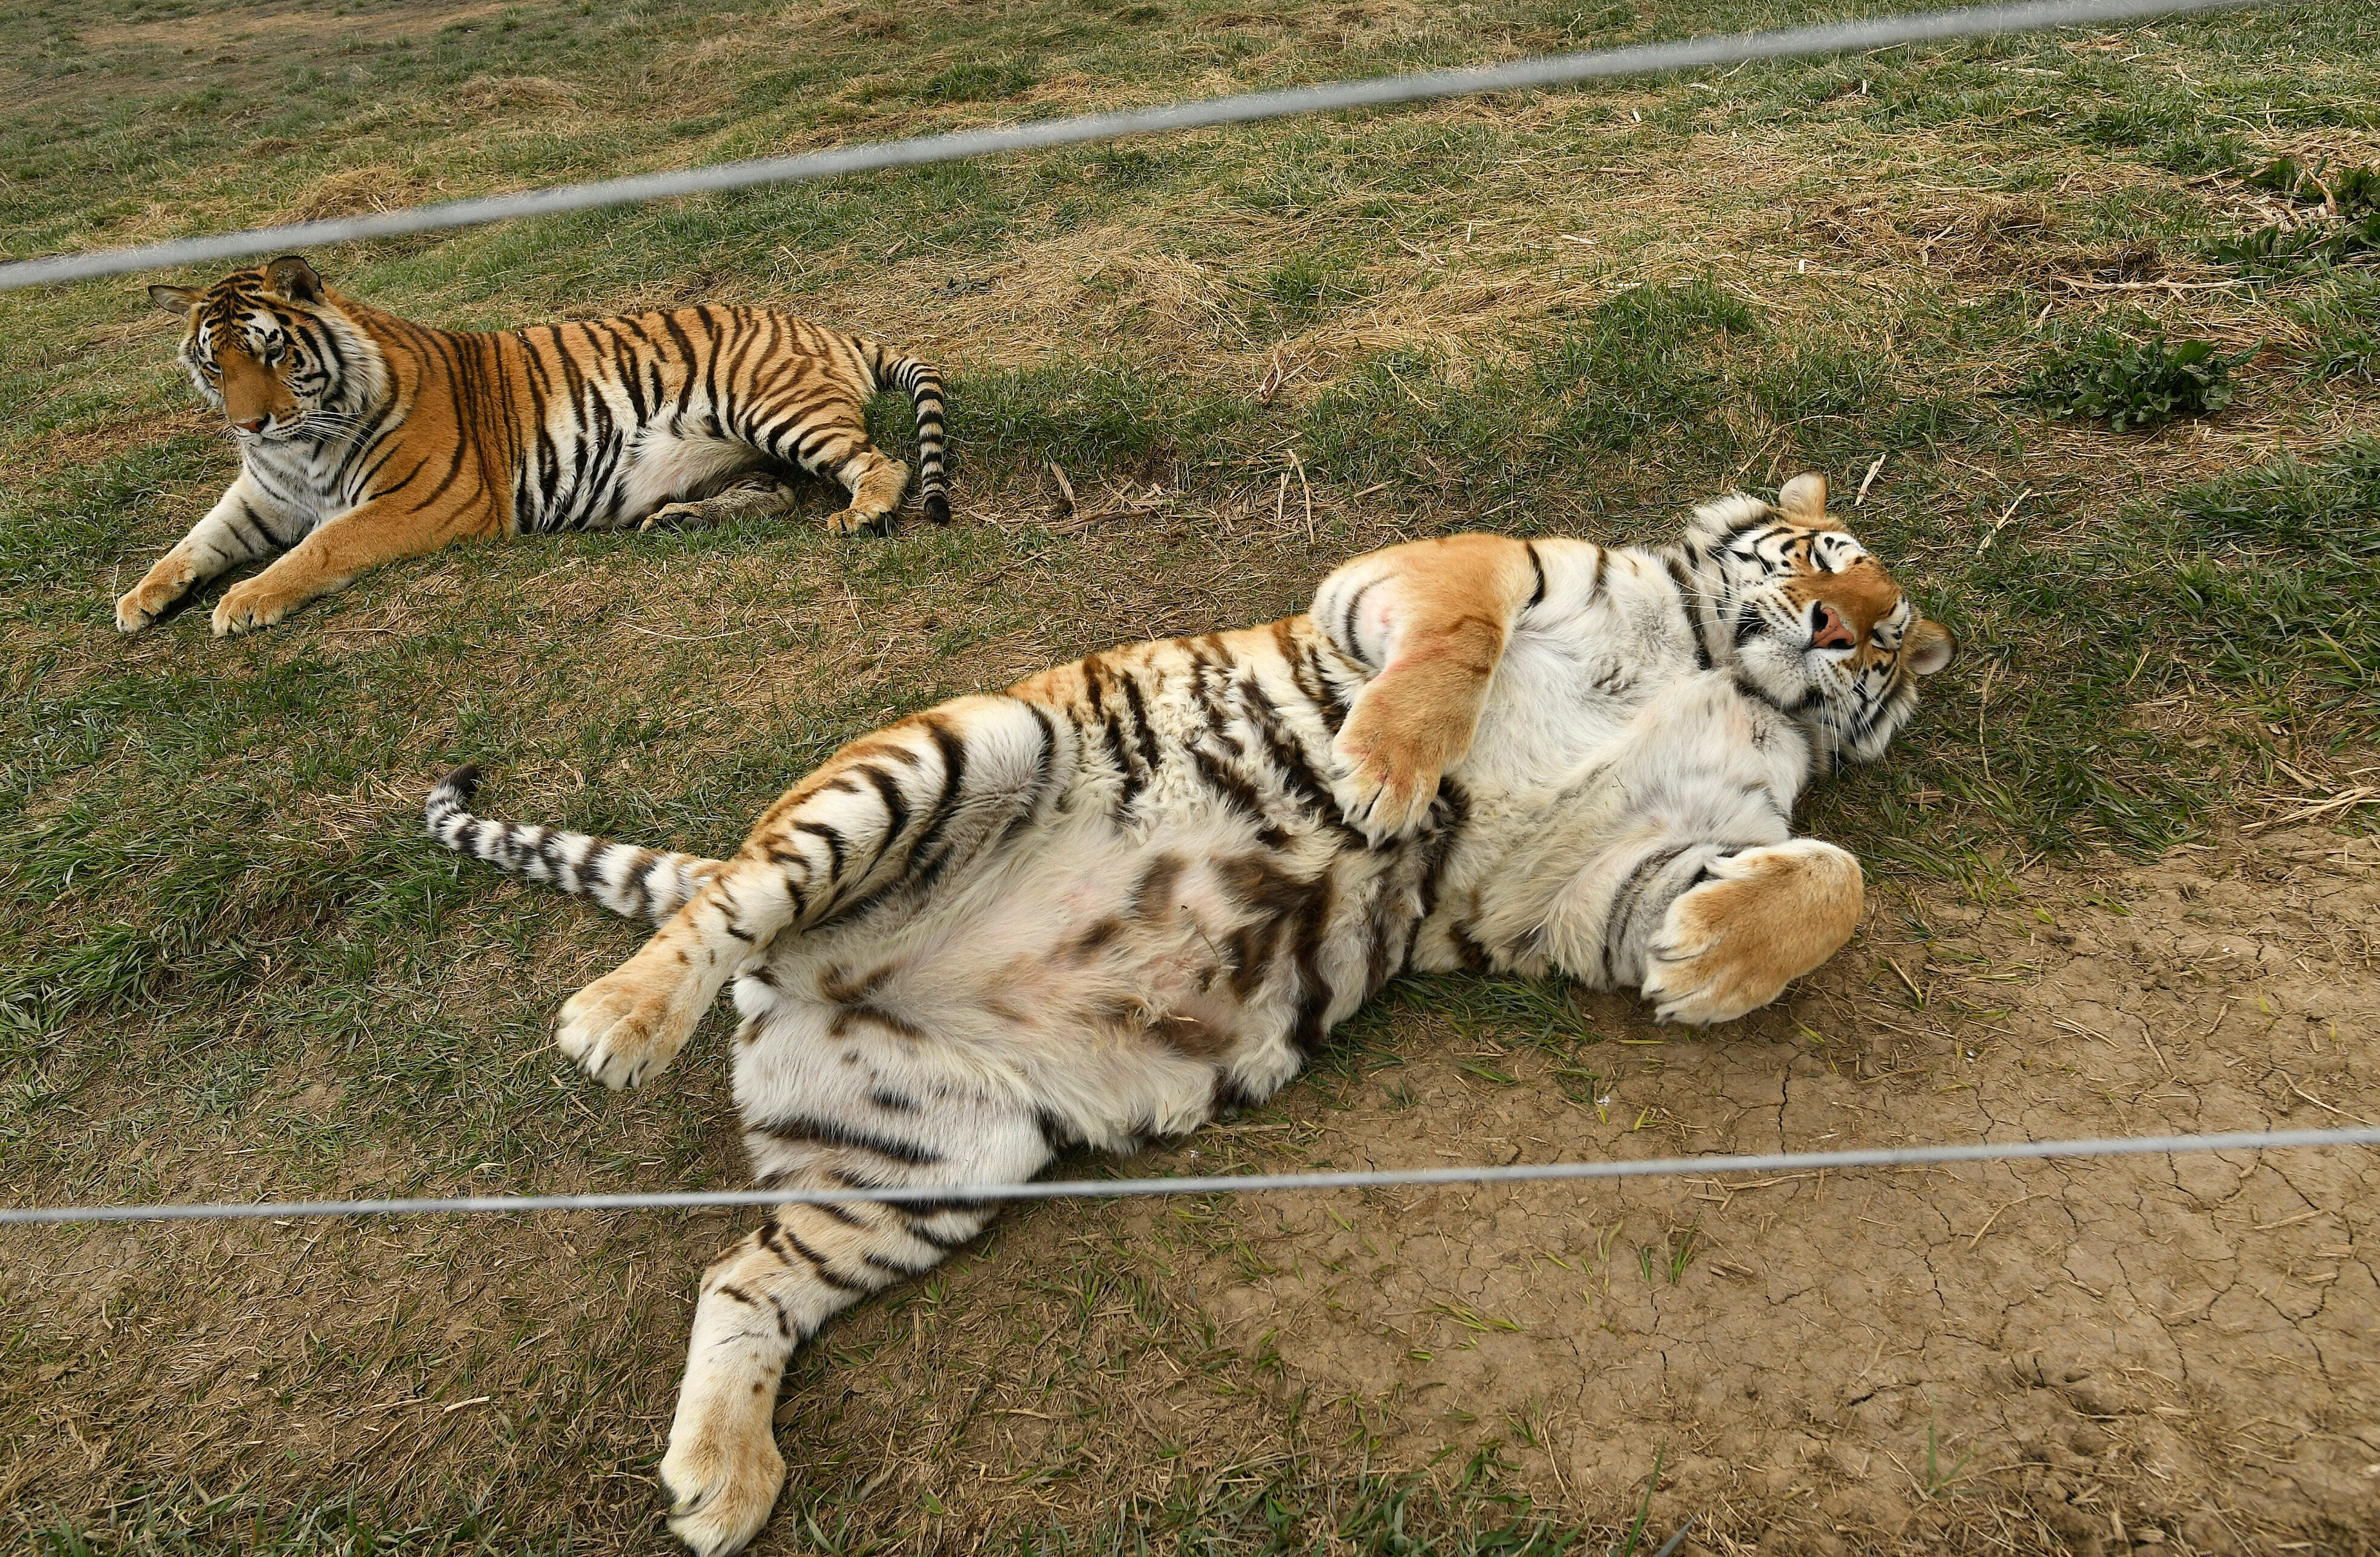 The tigers were reportedly in bad condition when they first got to The Wild Animal Sanctuary in 2017, suffering from psycholo